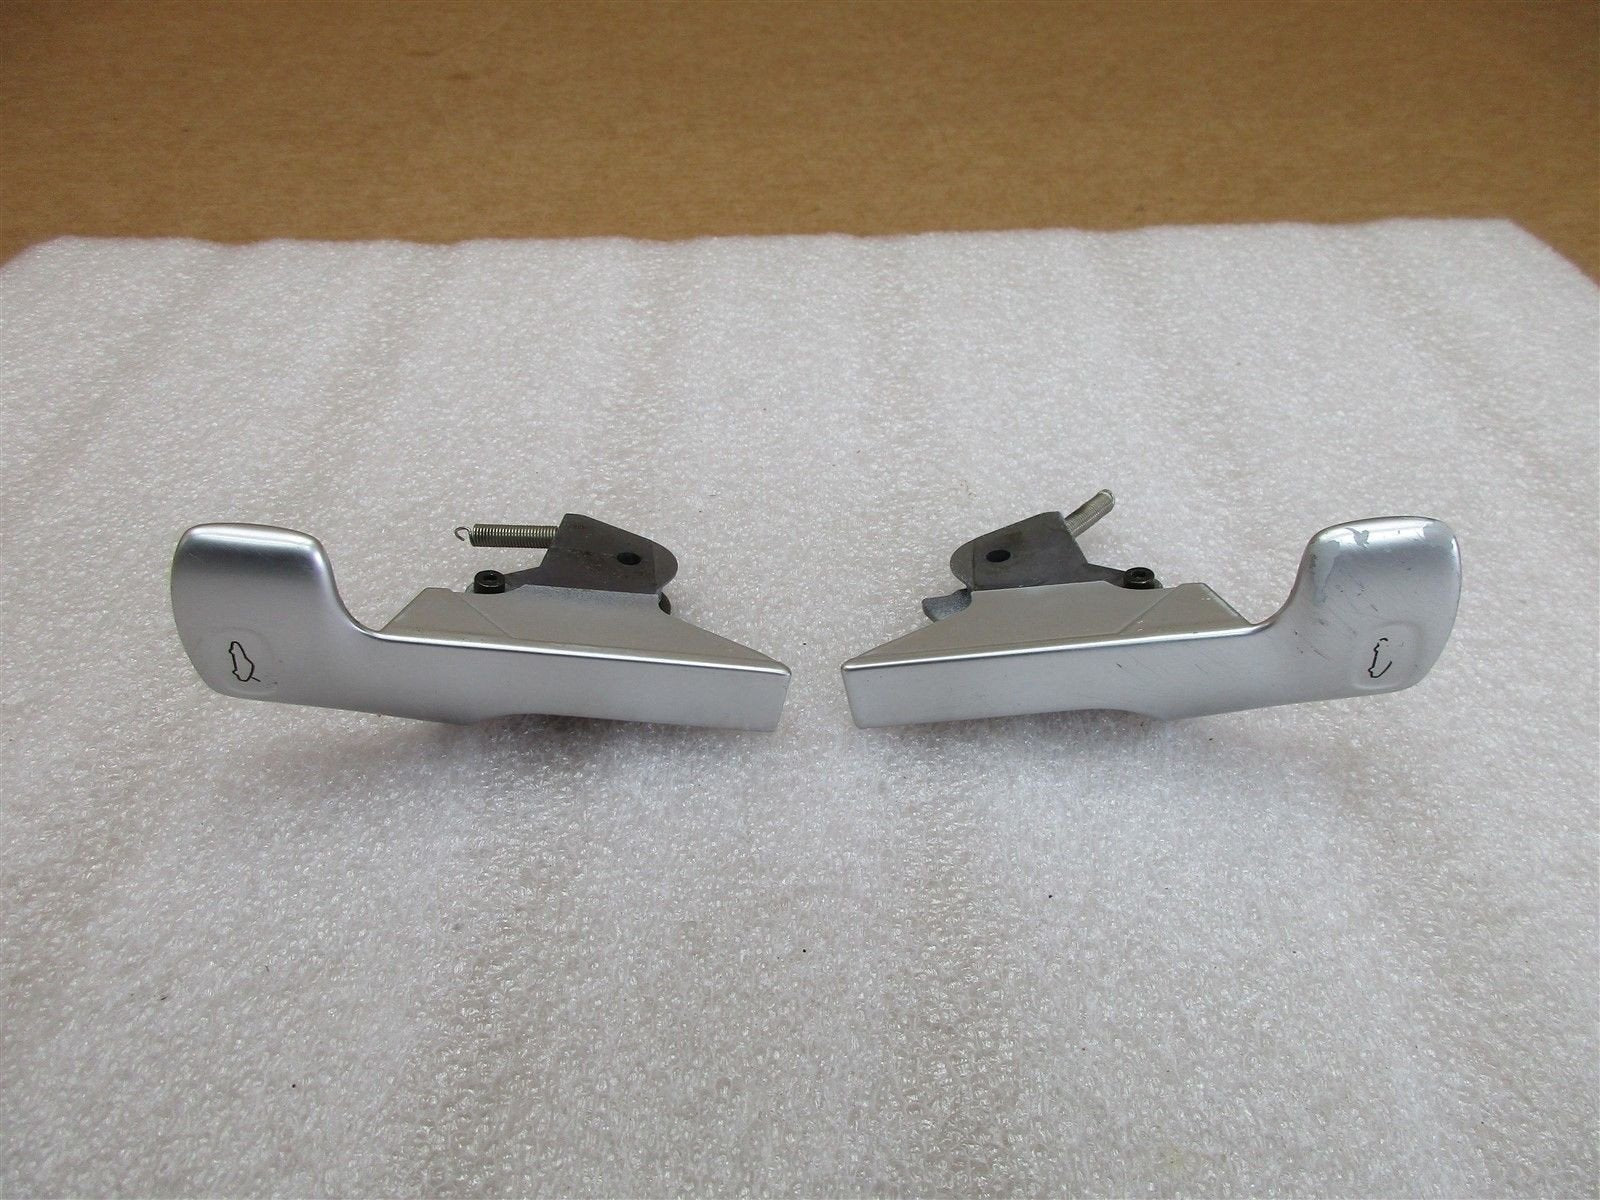 00 Carrera 911 RWD Porsche 996 Cabrio DOOR SILL SWITCHES Silver 86,352